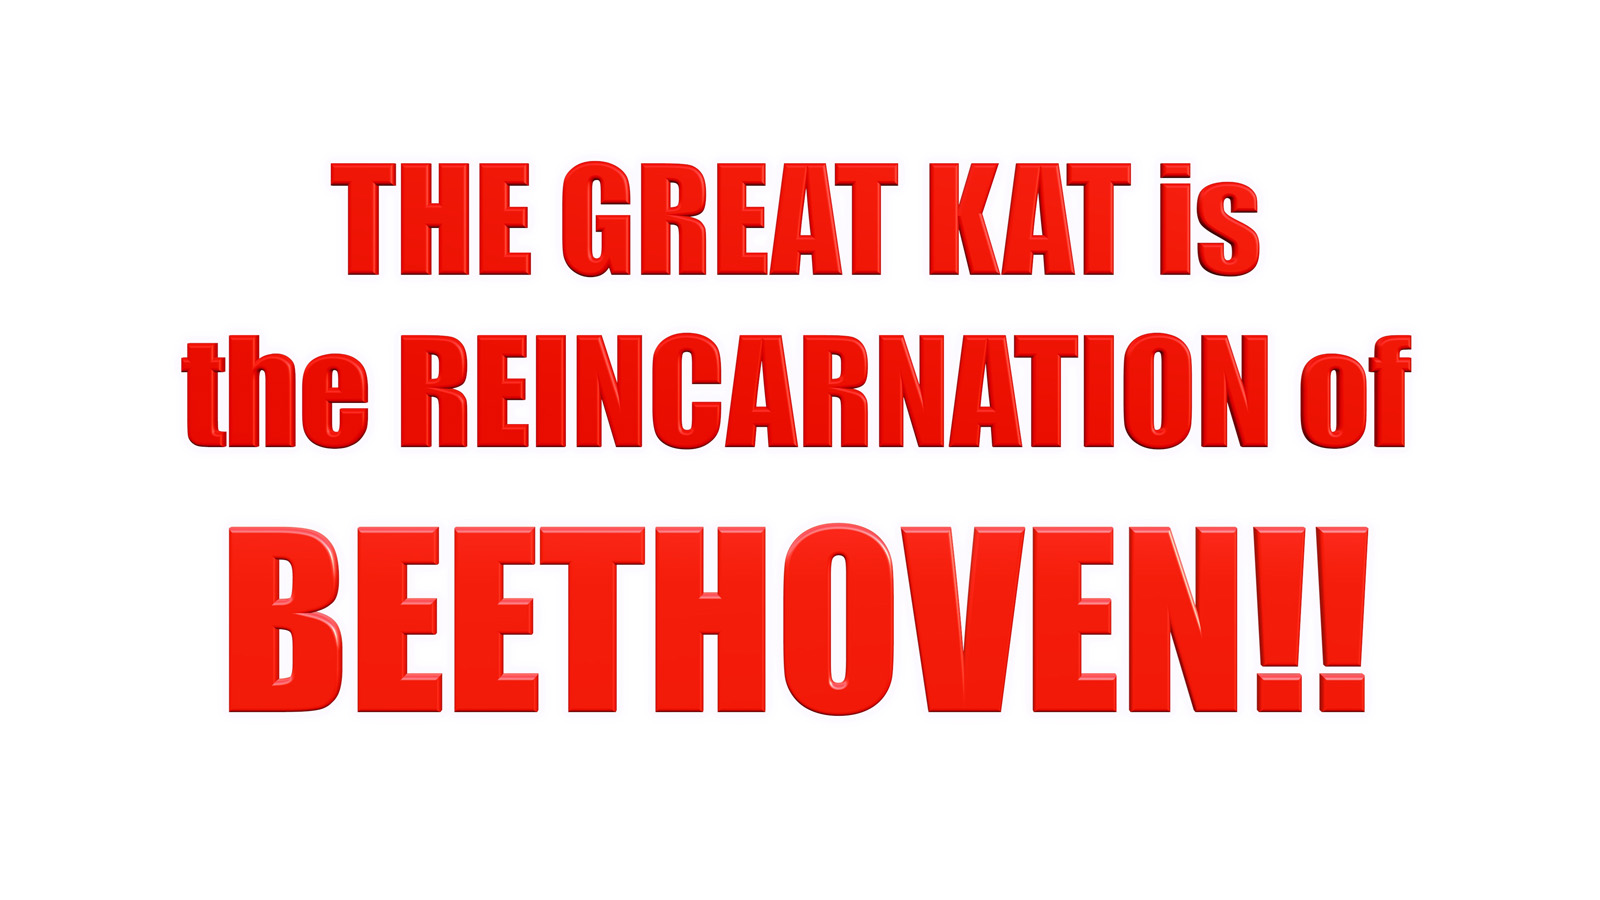 THE GREAT KAT is the REINCARNATION of BEETHOVEN!